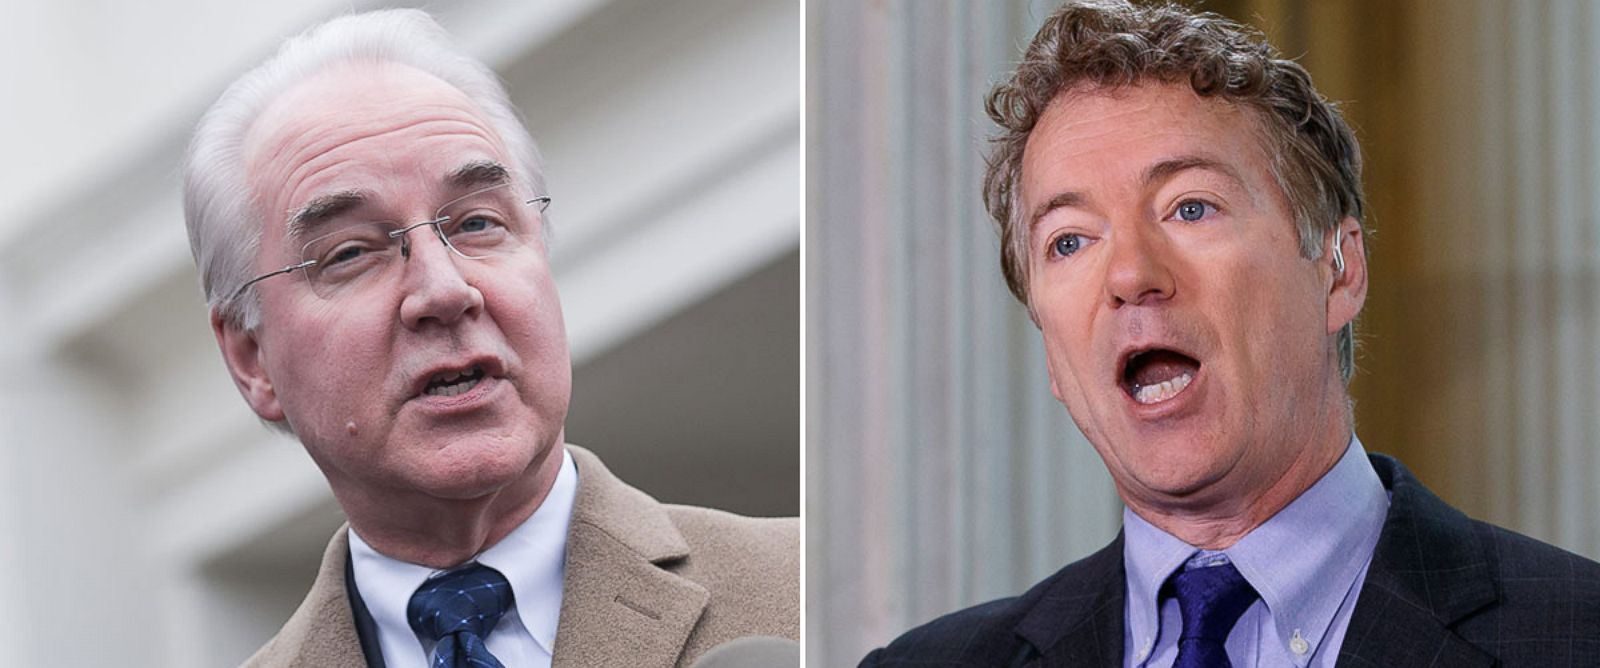 PHOTO: Health and Human Services Secretary Tom Price in Washington, March 13, 2017; Sen. Rand Paul in Washington, March 7, 2017.